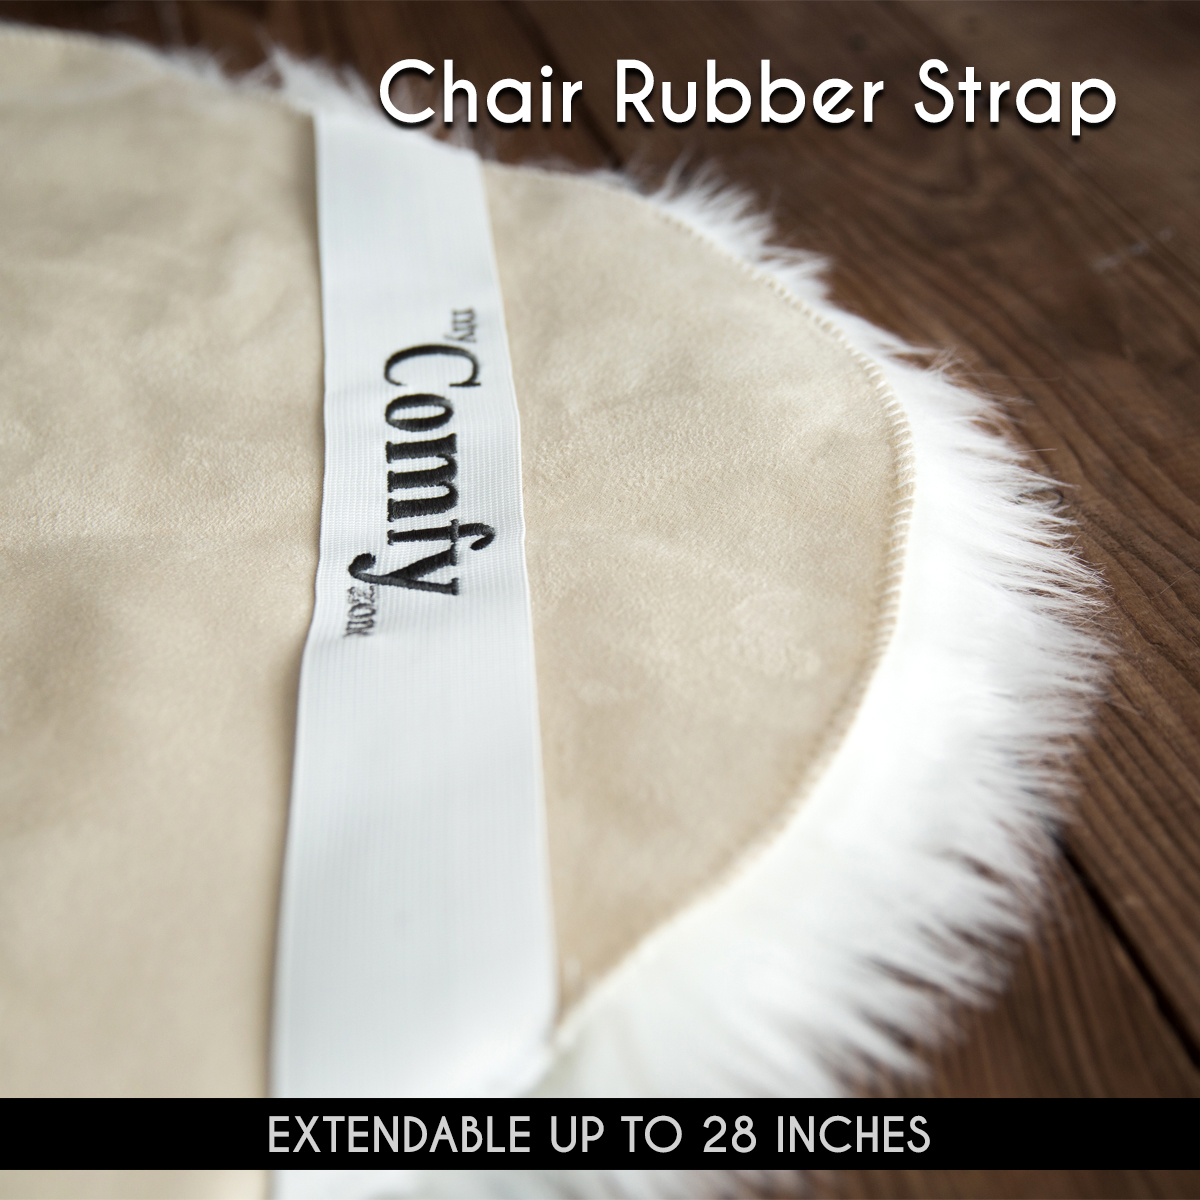 fur chair cover cool and unusual chairs sheepskin faux rug seat pad area rugs for bedroom sofa floor vanity nursery decor white